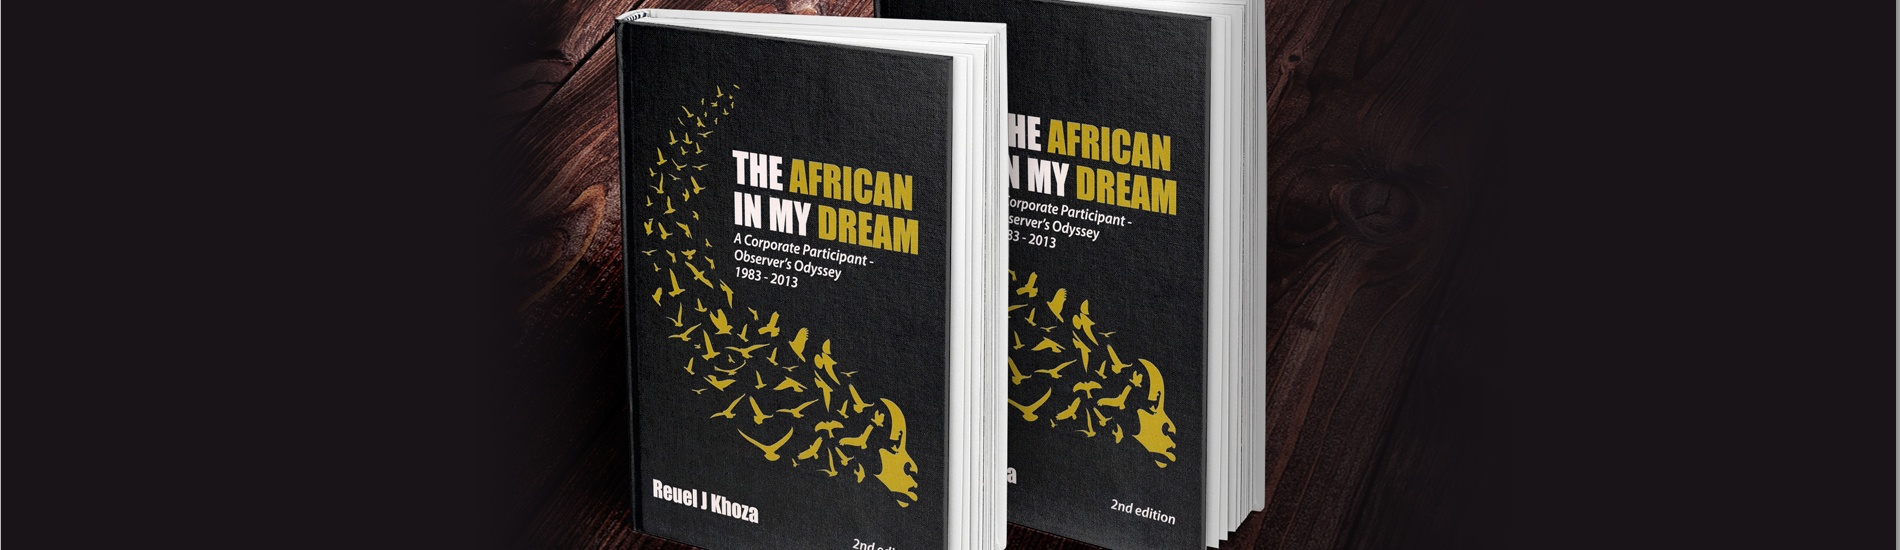 The African in my Dream